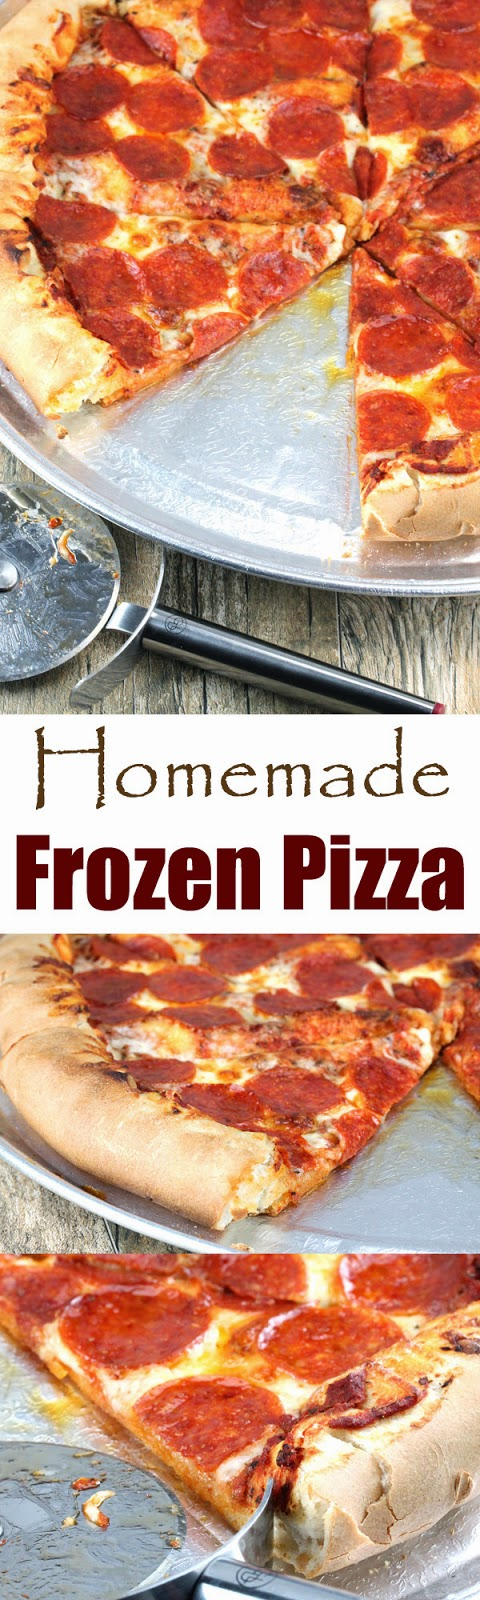 Homemade Frozen Pizza